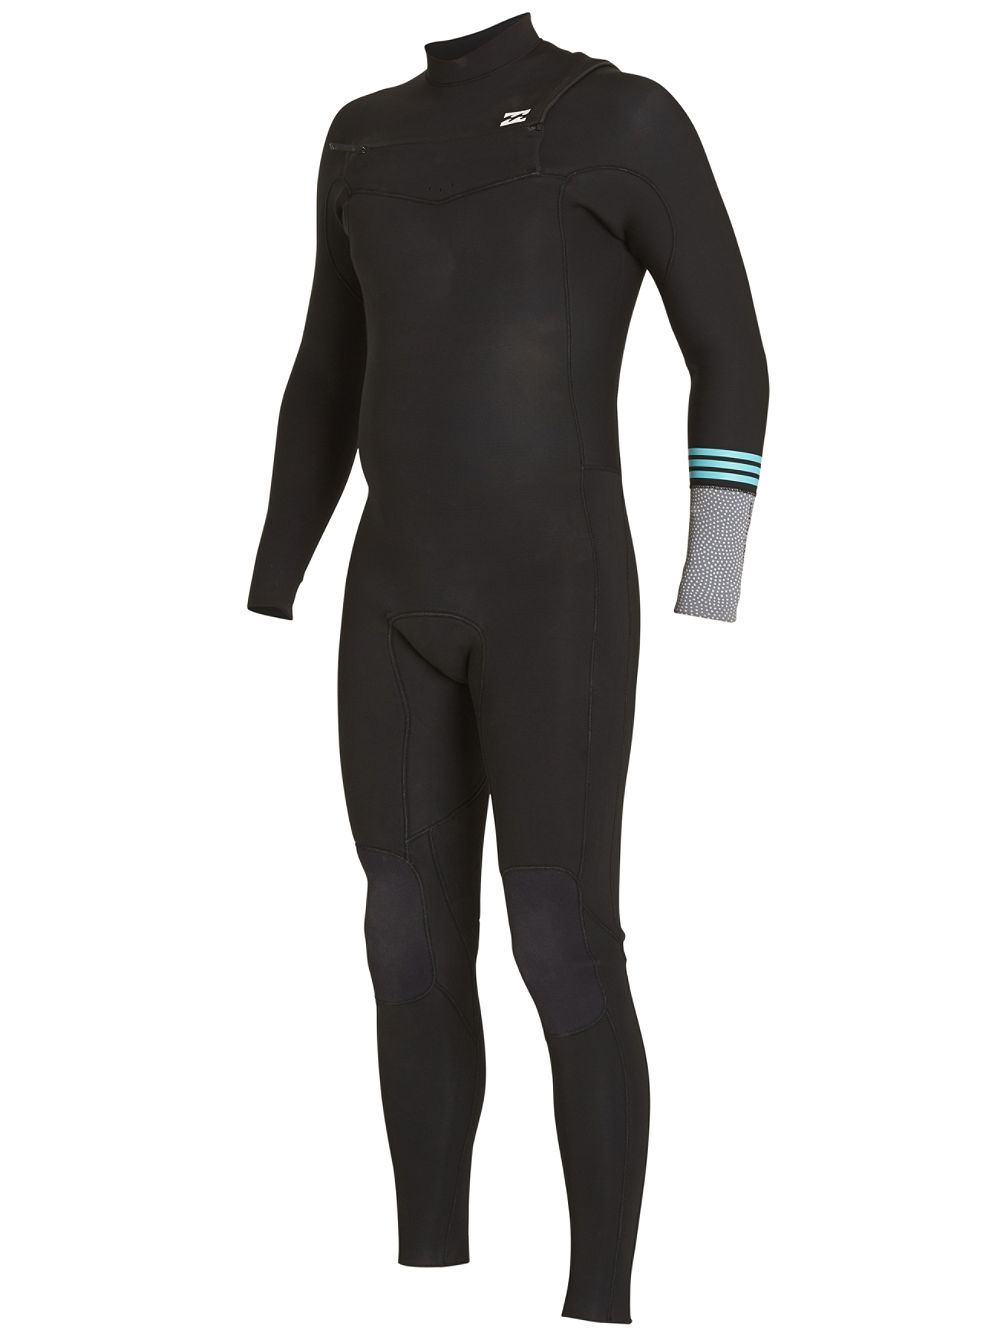 5/4 Revolution Tribong Chest Zip Wetsuit